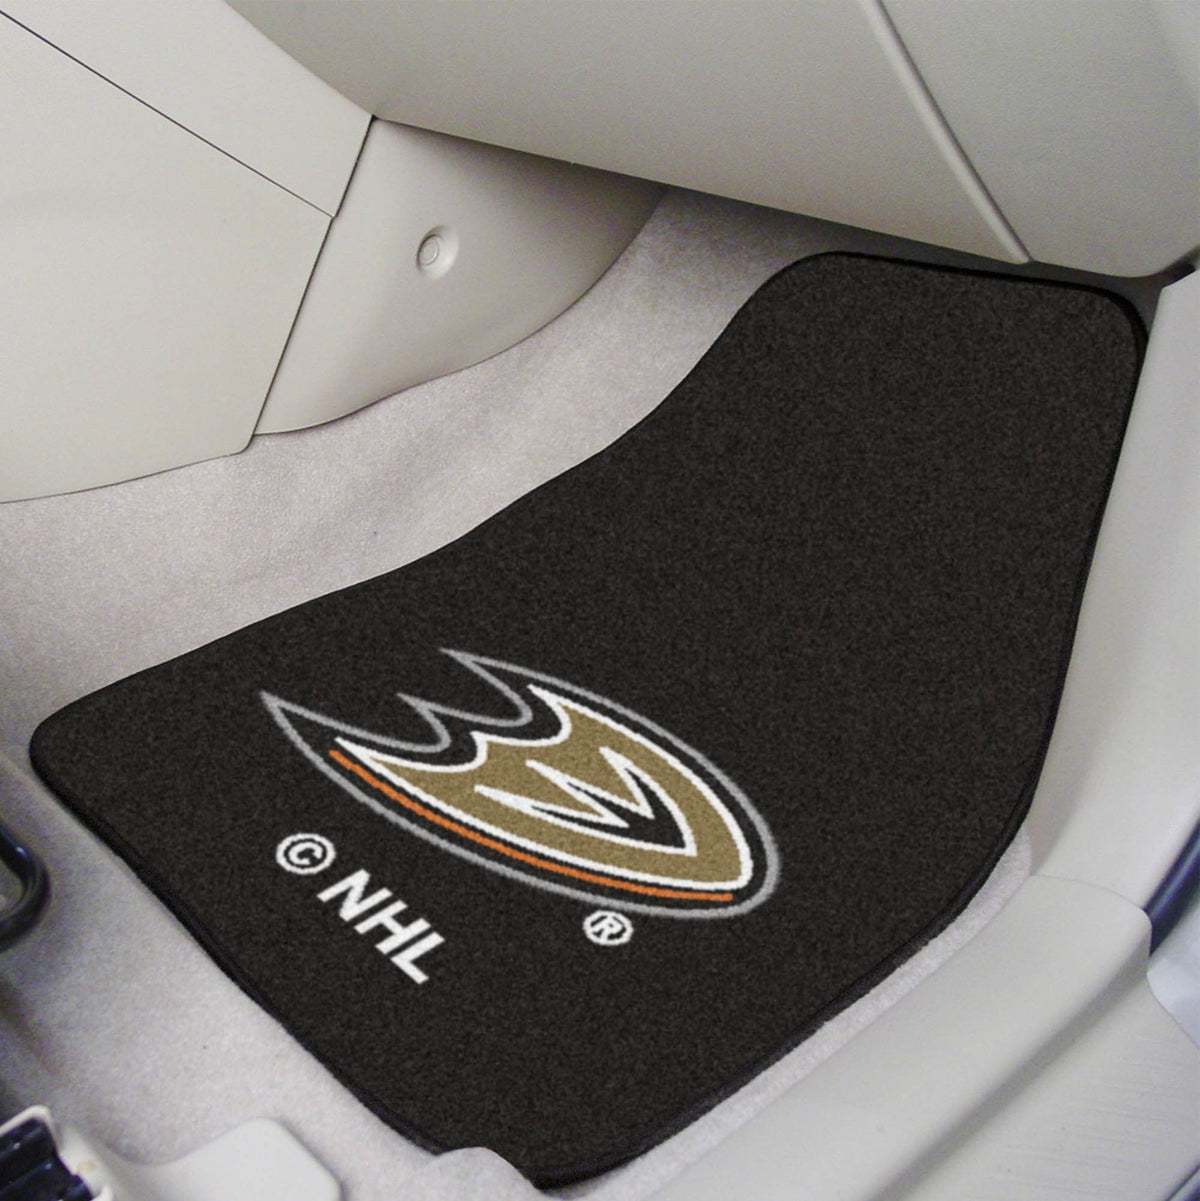 NHL - Carpet Car Mat, 2-Piece Set NHL Mats, Front Car Mats, 2-pc Carpet Car Mat Set, NHL, Auto Fan Mats Anaheim Ducks